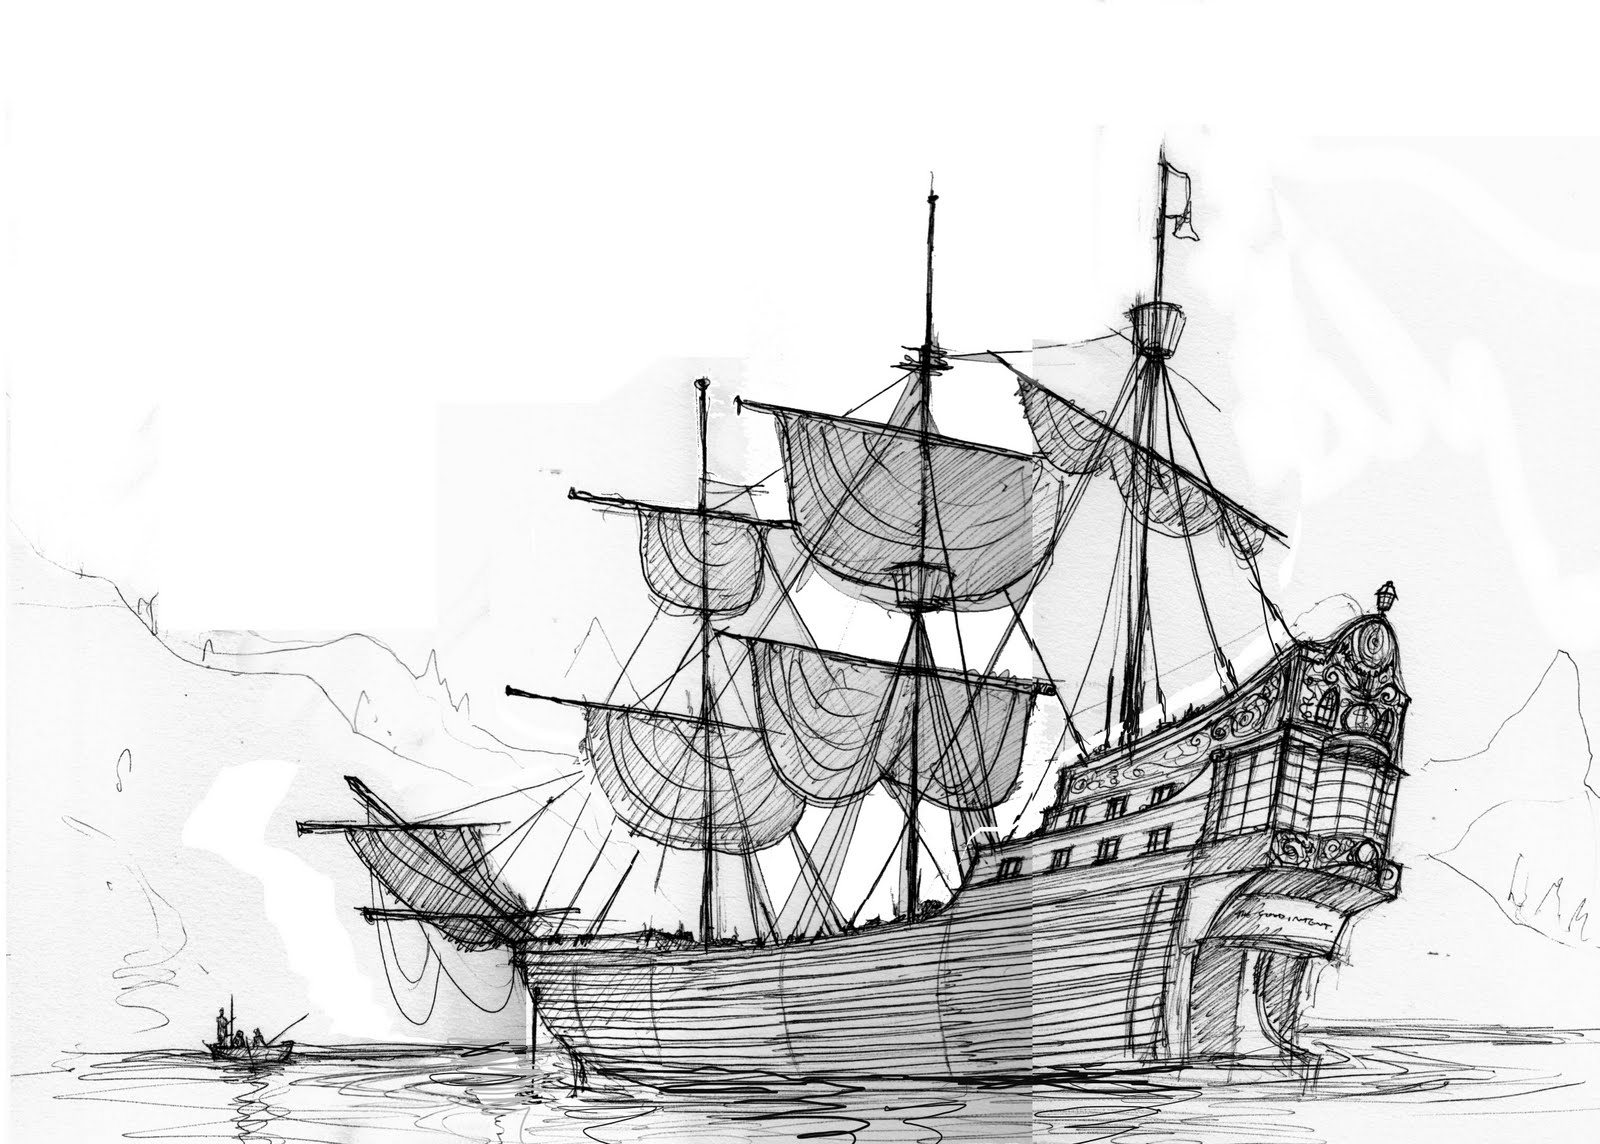 Pirate ship drawing - photo#4